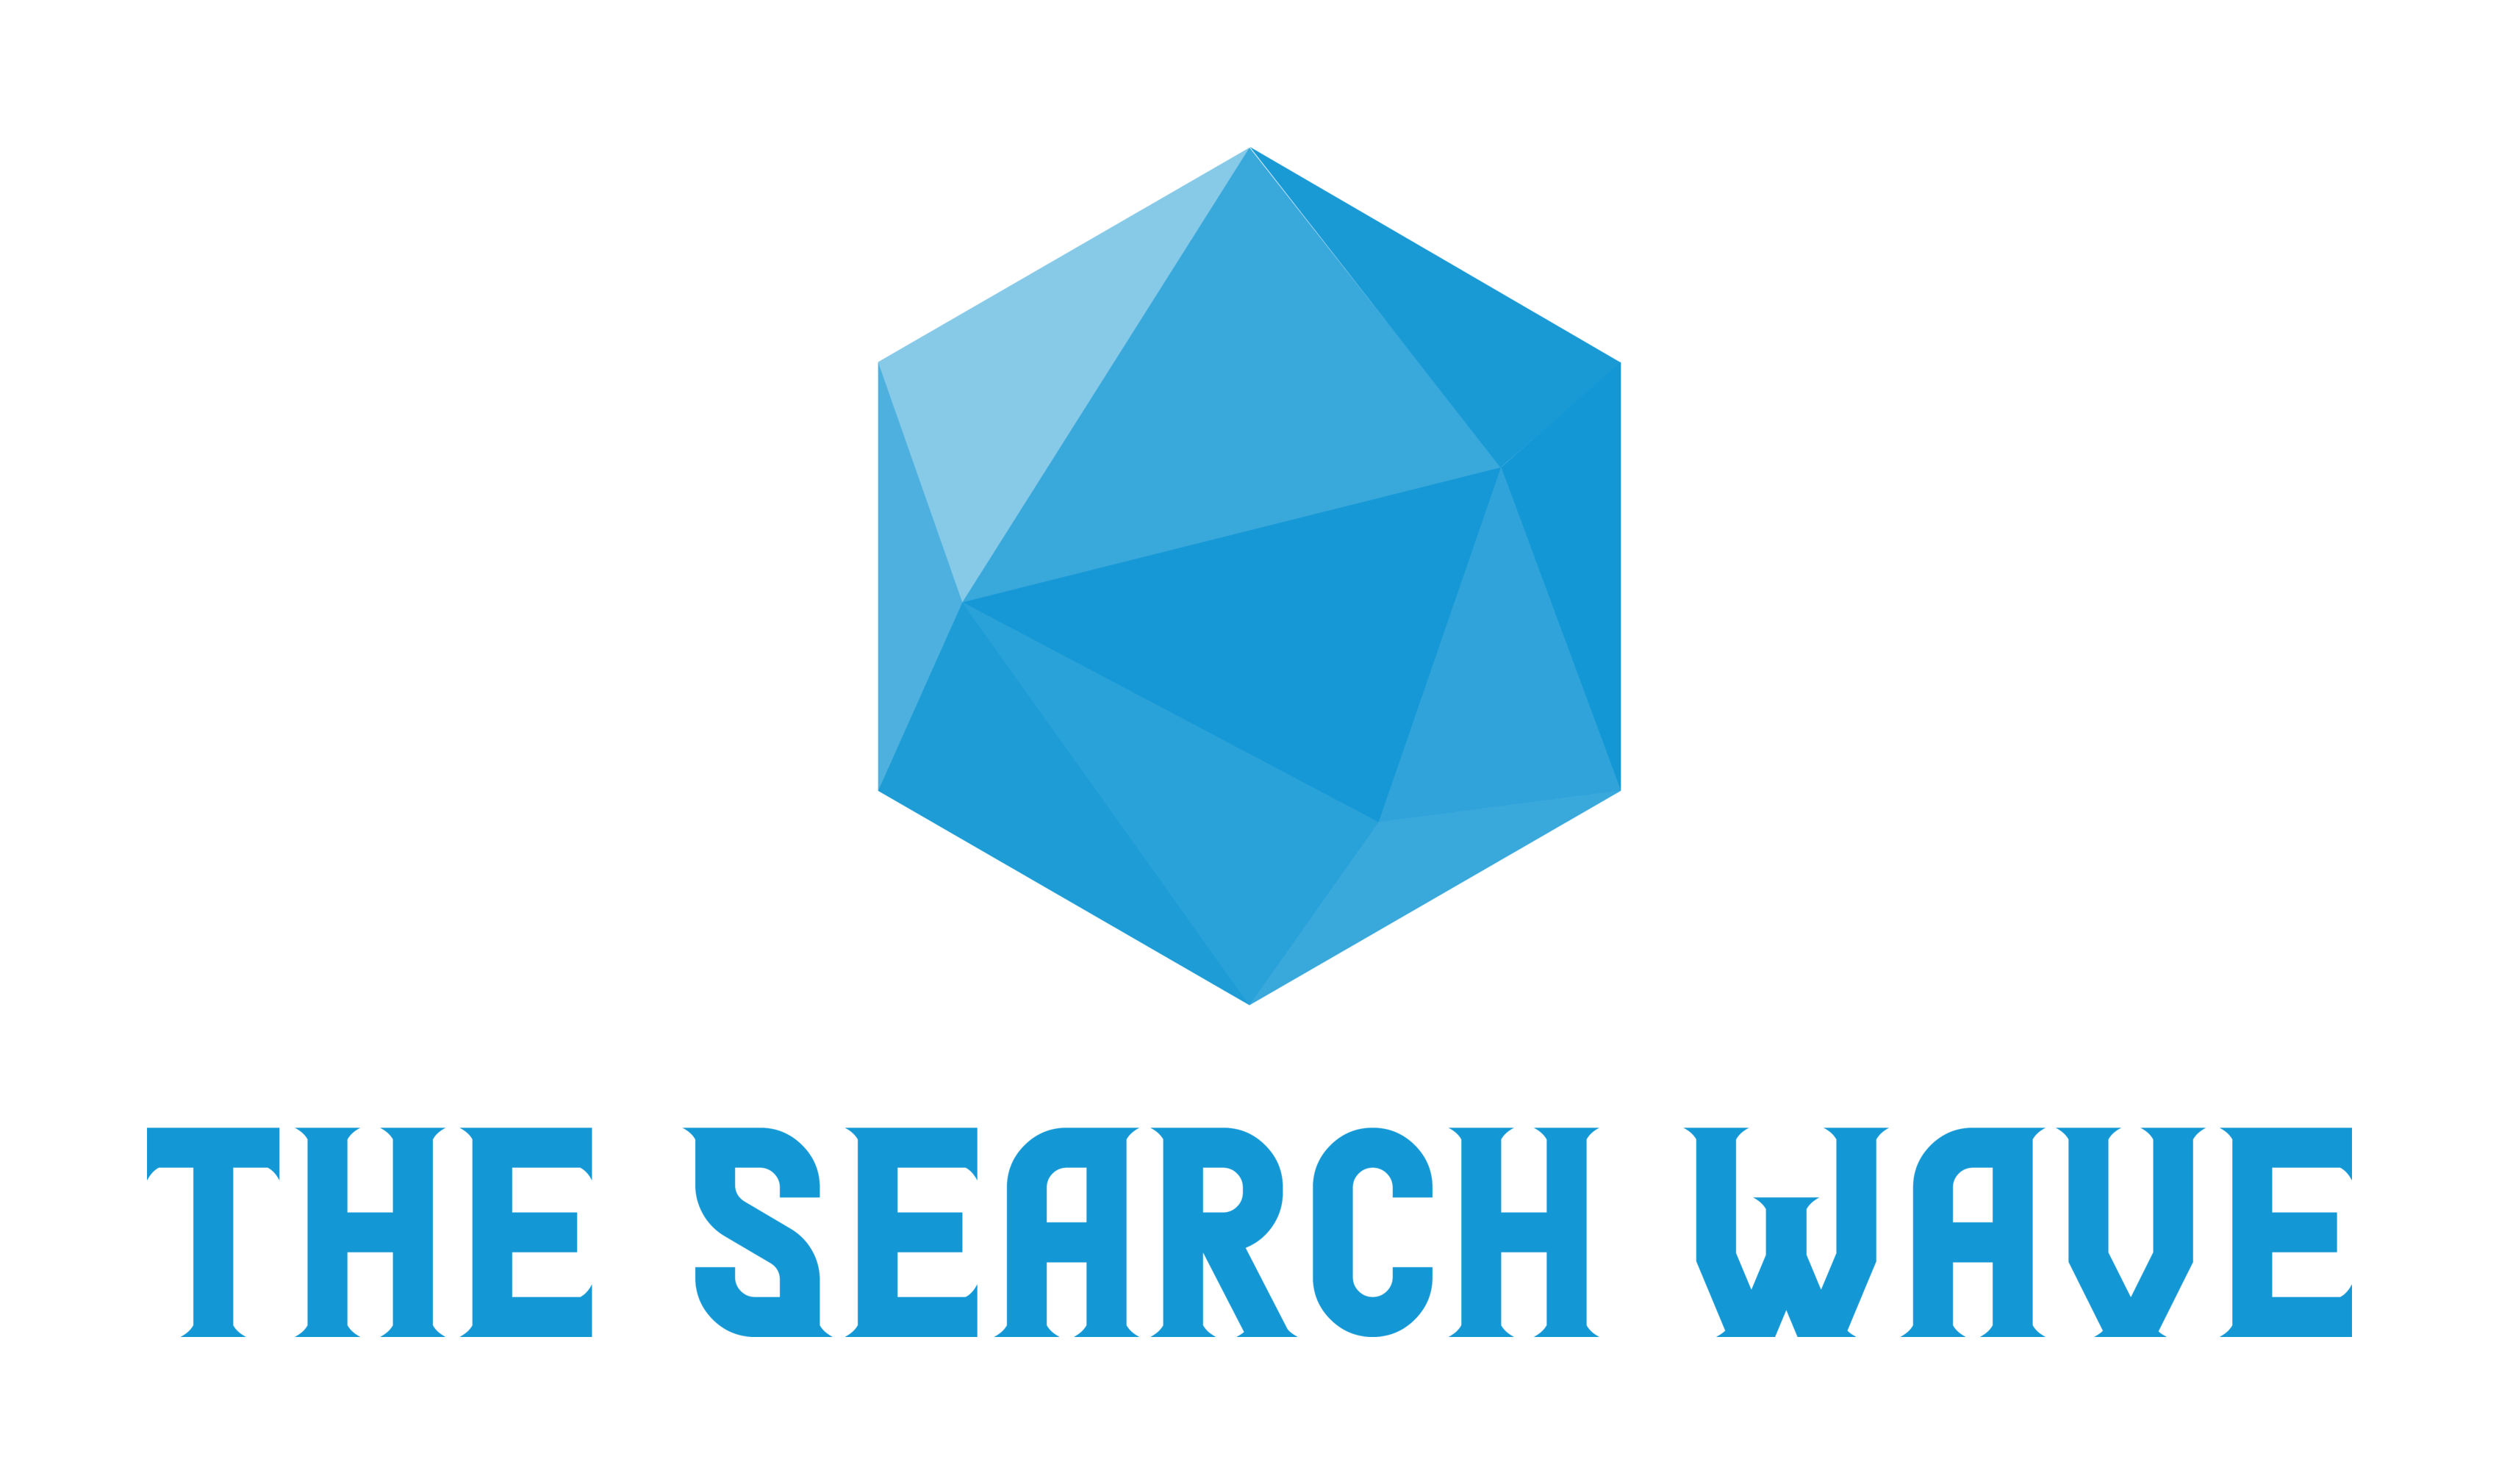 The Search Wave